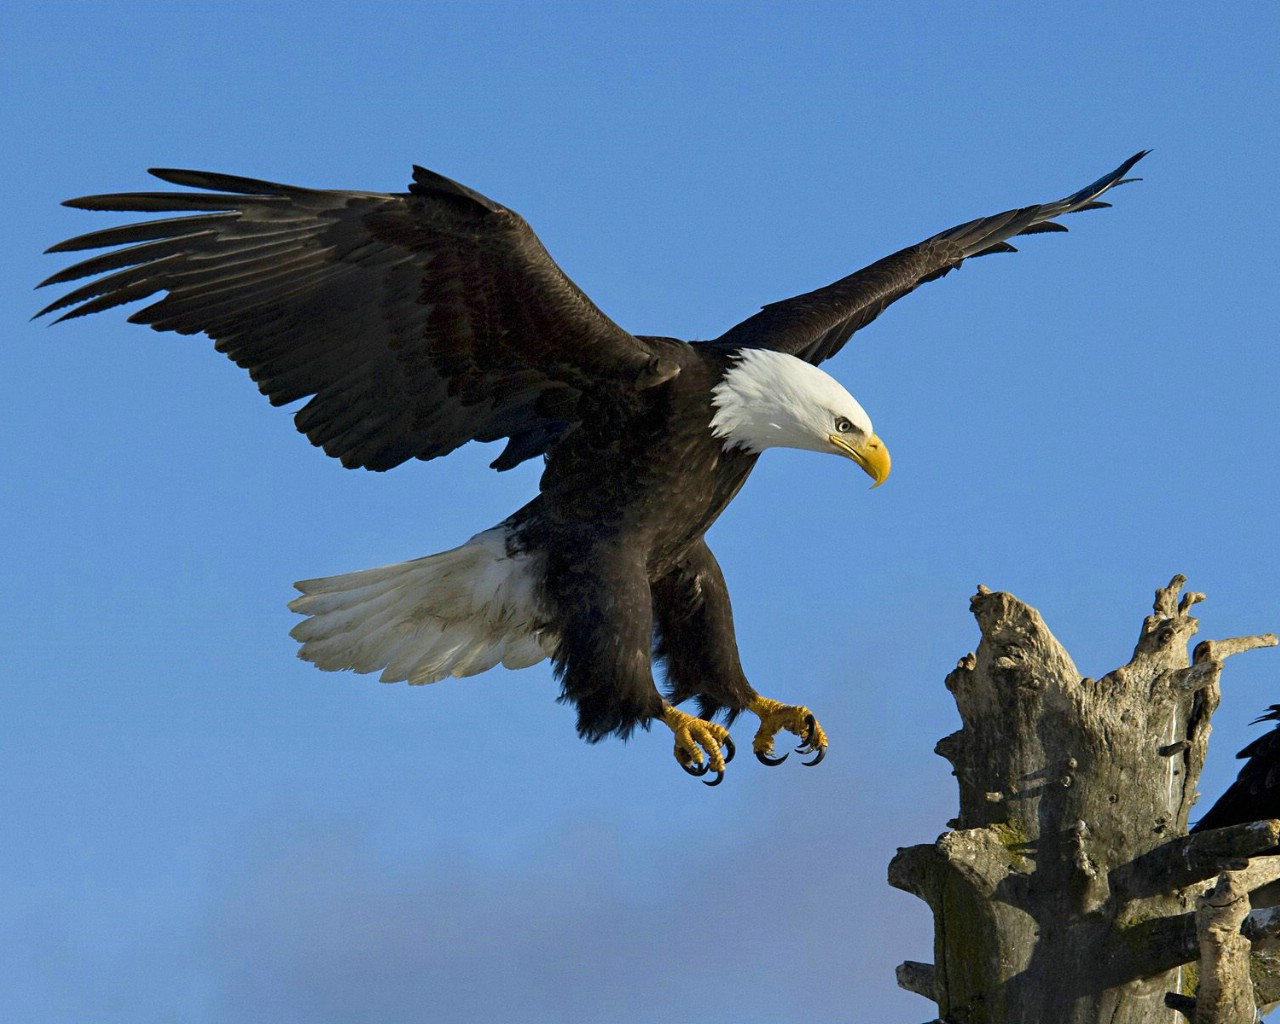 eagle 1280x1024 wallpaper - photo #37